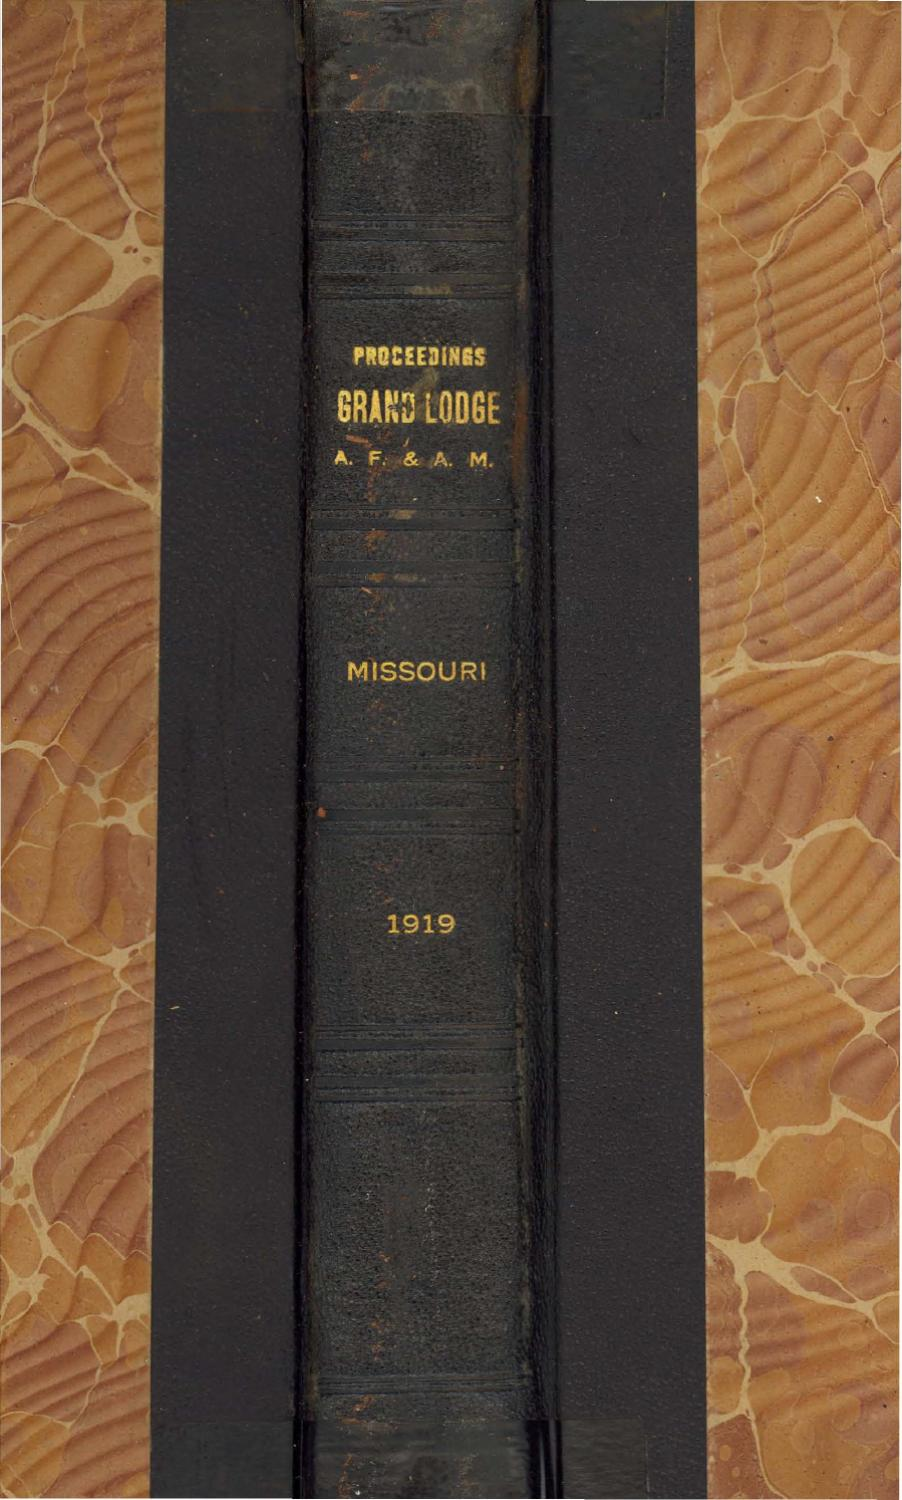 1919 Proceedings Grand Lodge Of Missouri Volume 2 Appendixes By Charles Jourdan 1005 2312 Silver Freemasons Issuu